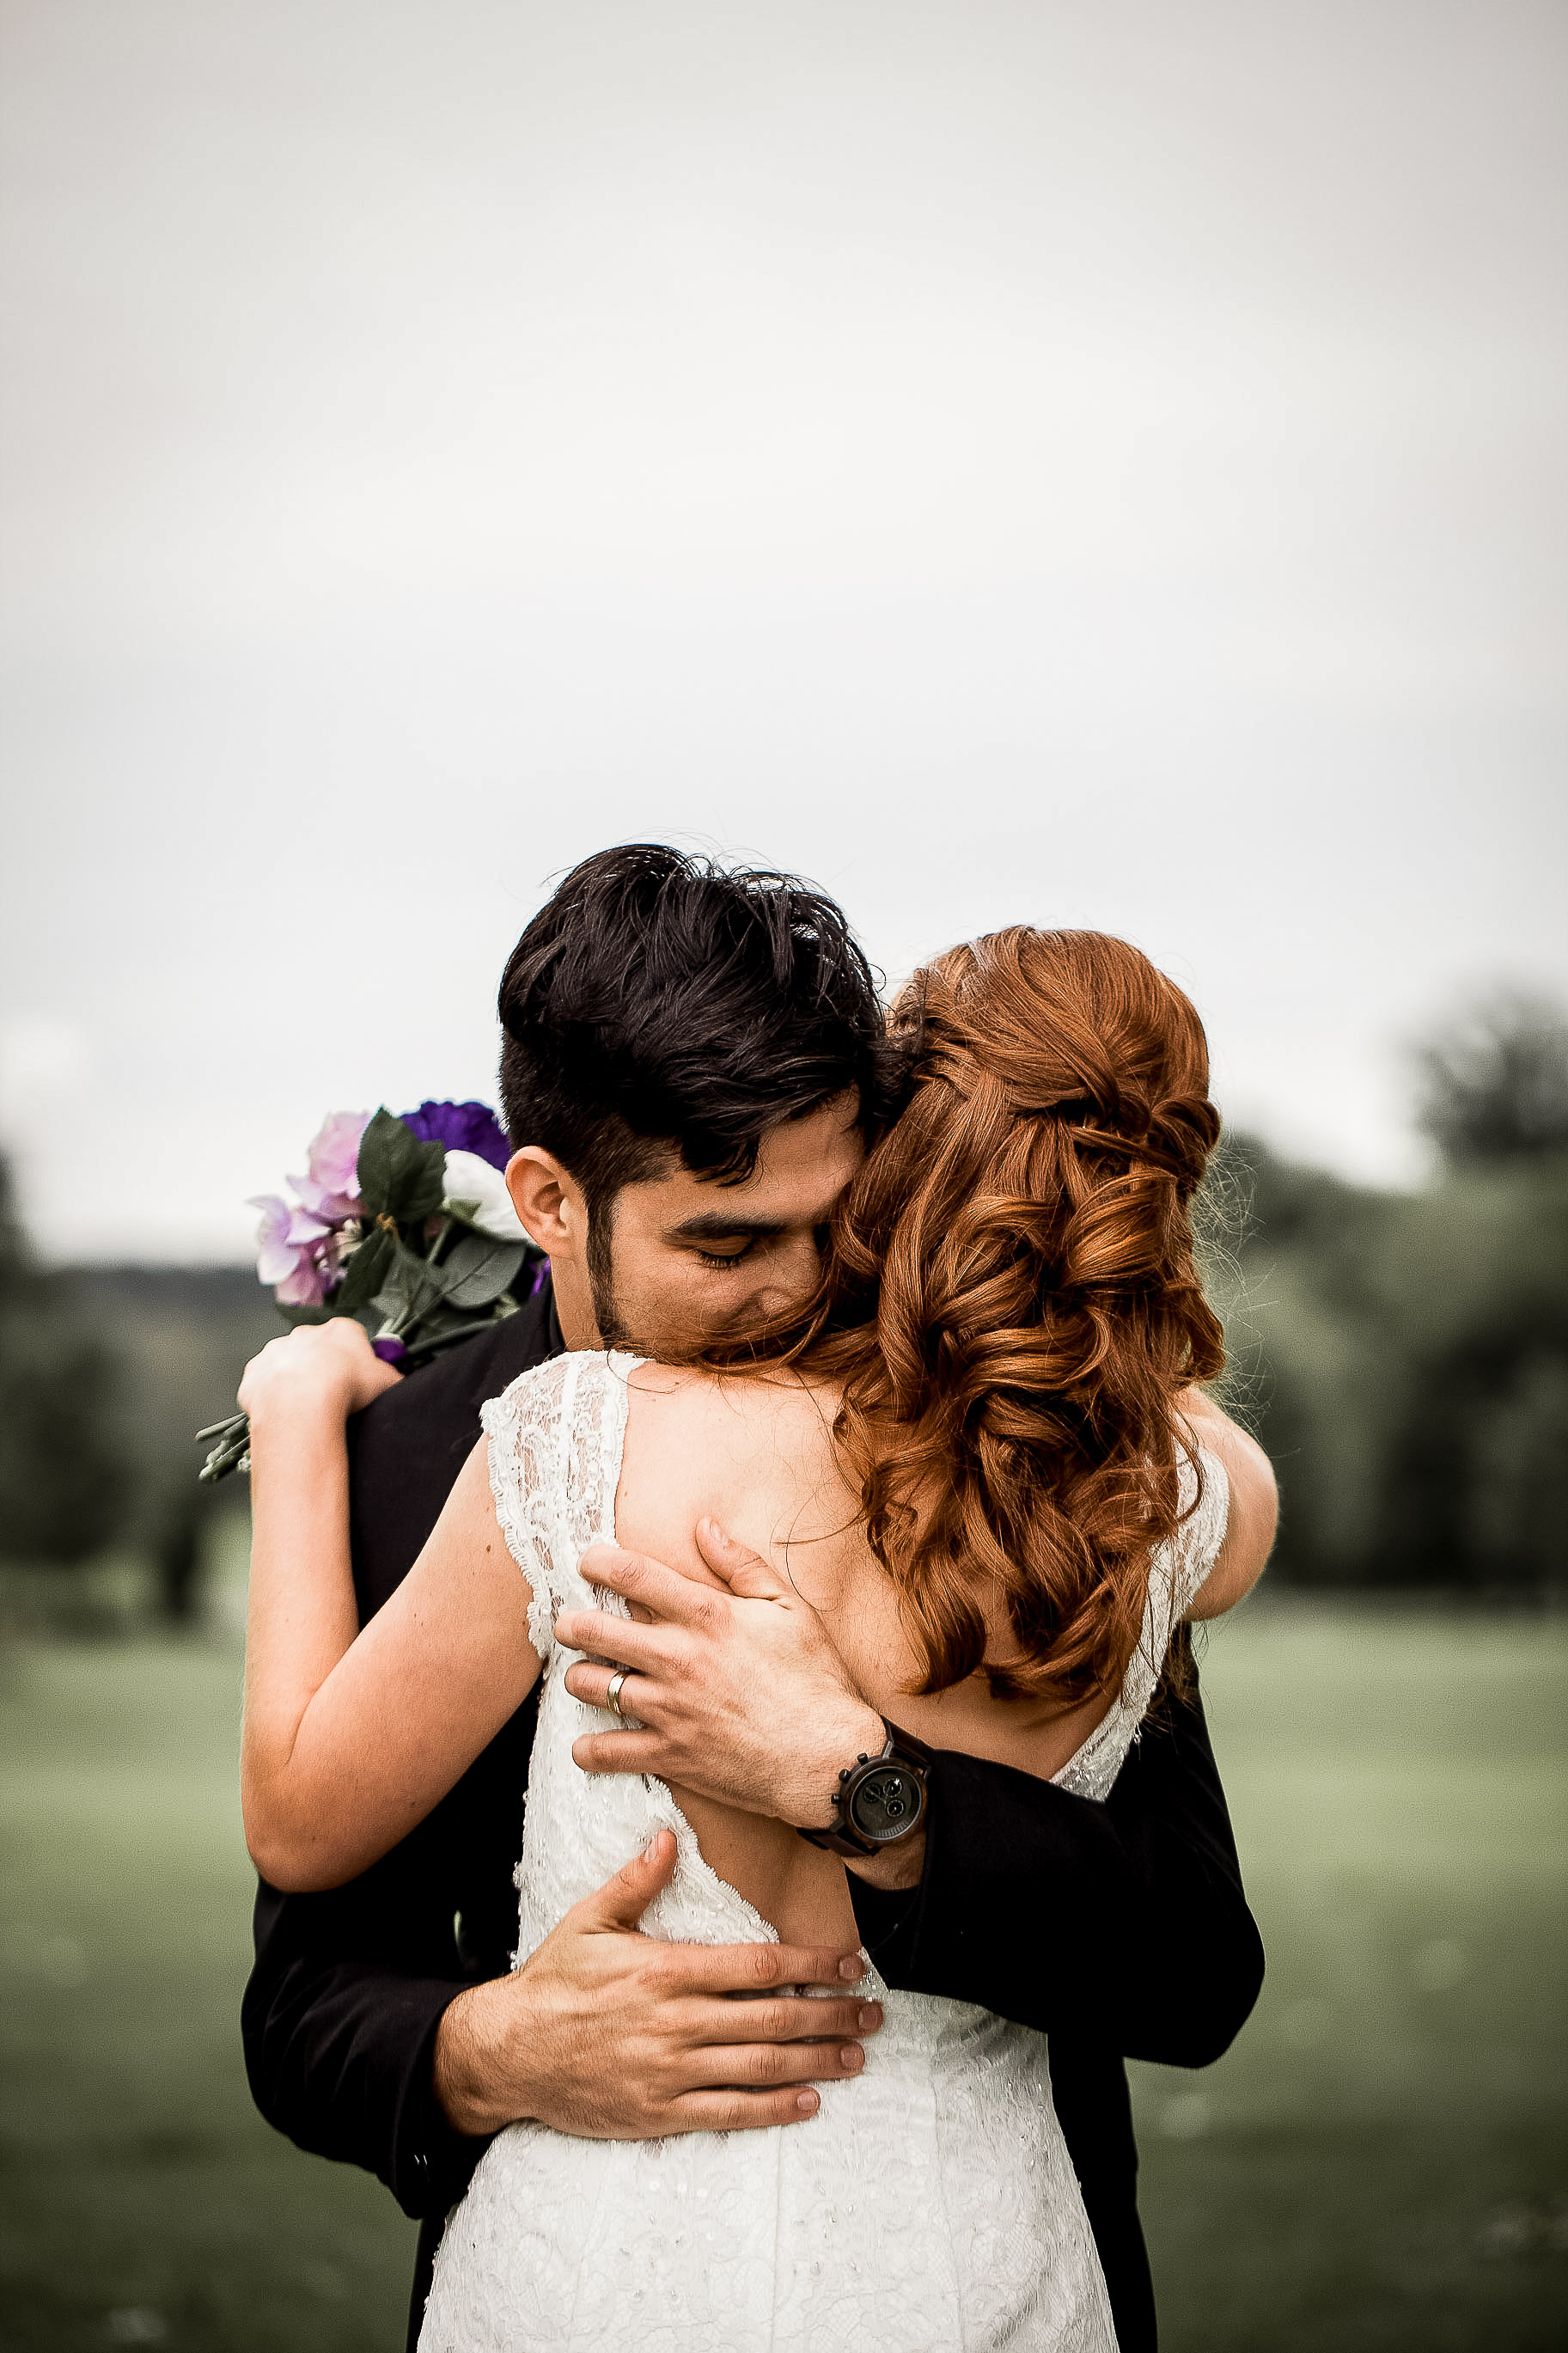 pittsburgh_wedding_photographer_liz_capuano-0899.jpg